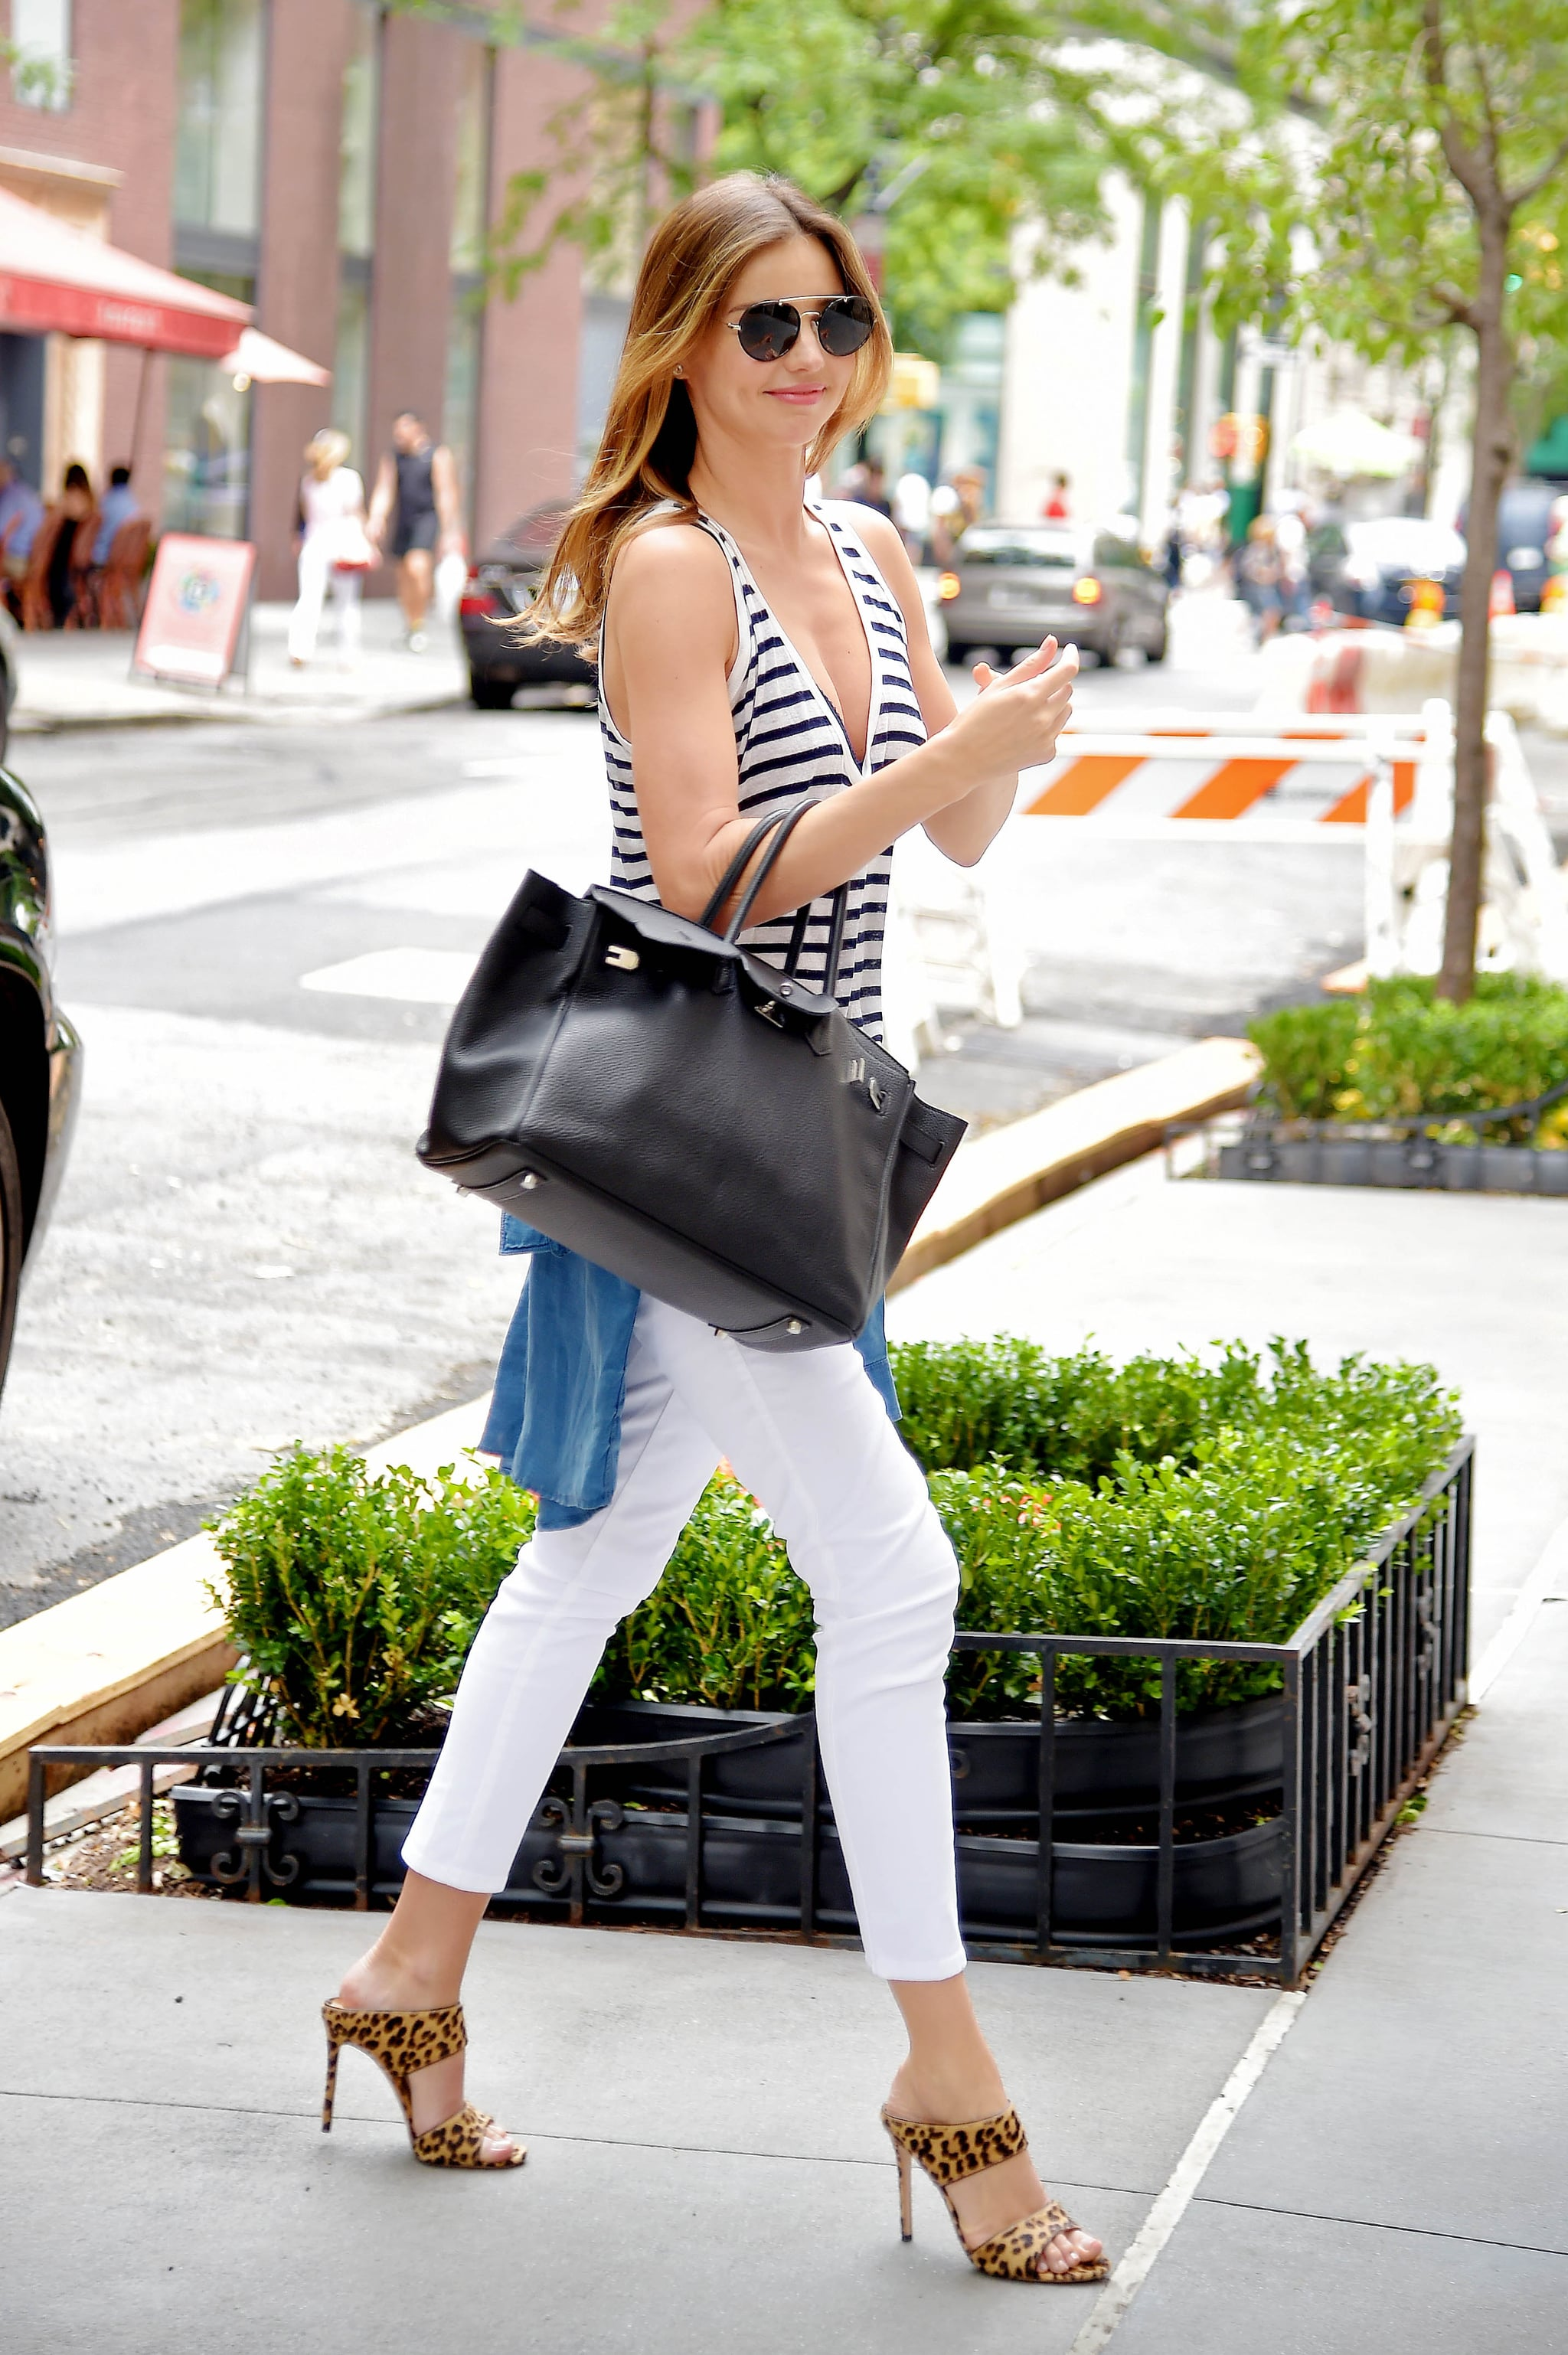 Dign Miranda Kerr Street Style It S Been One Chic Week For